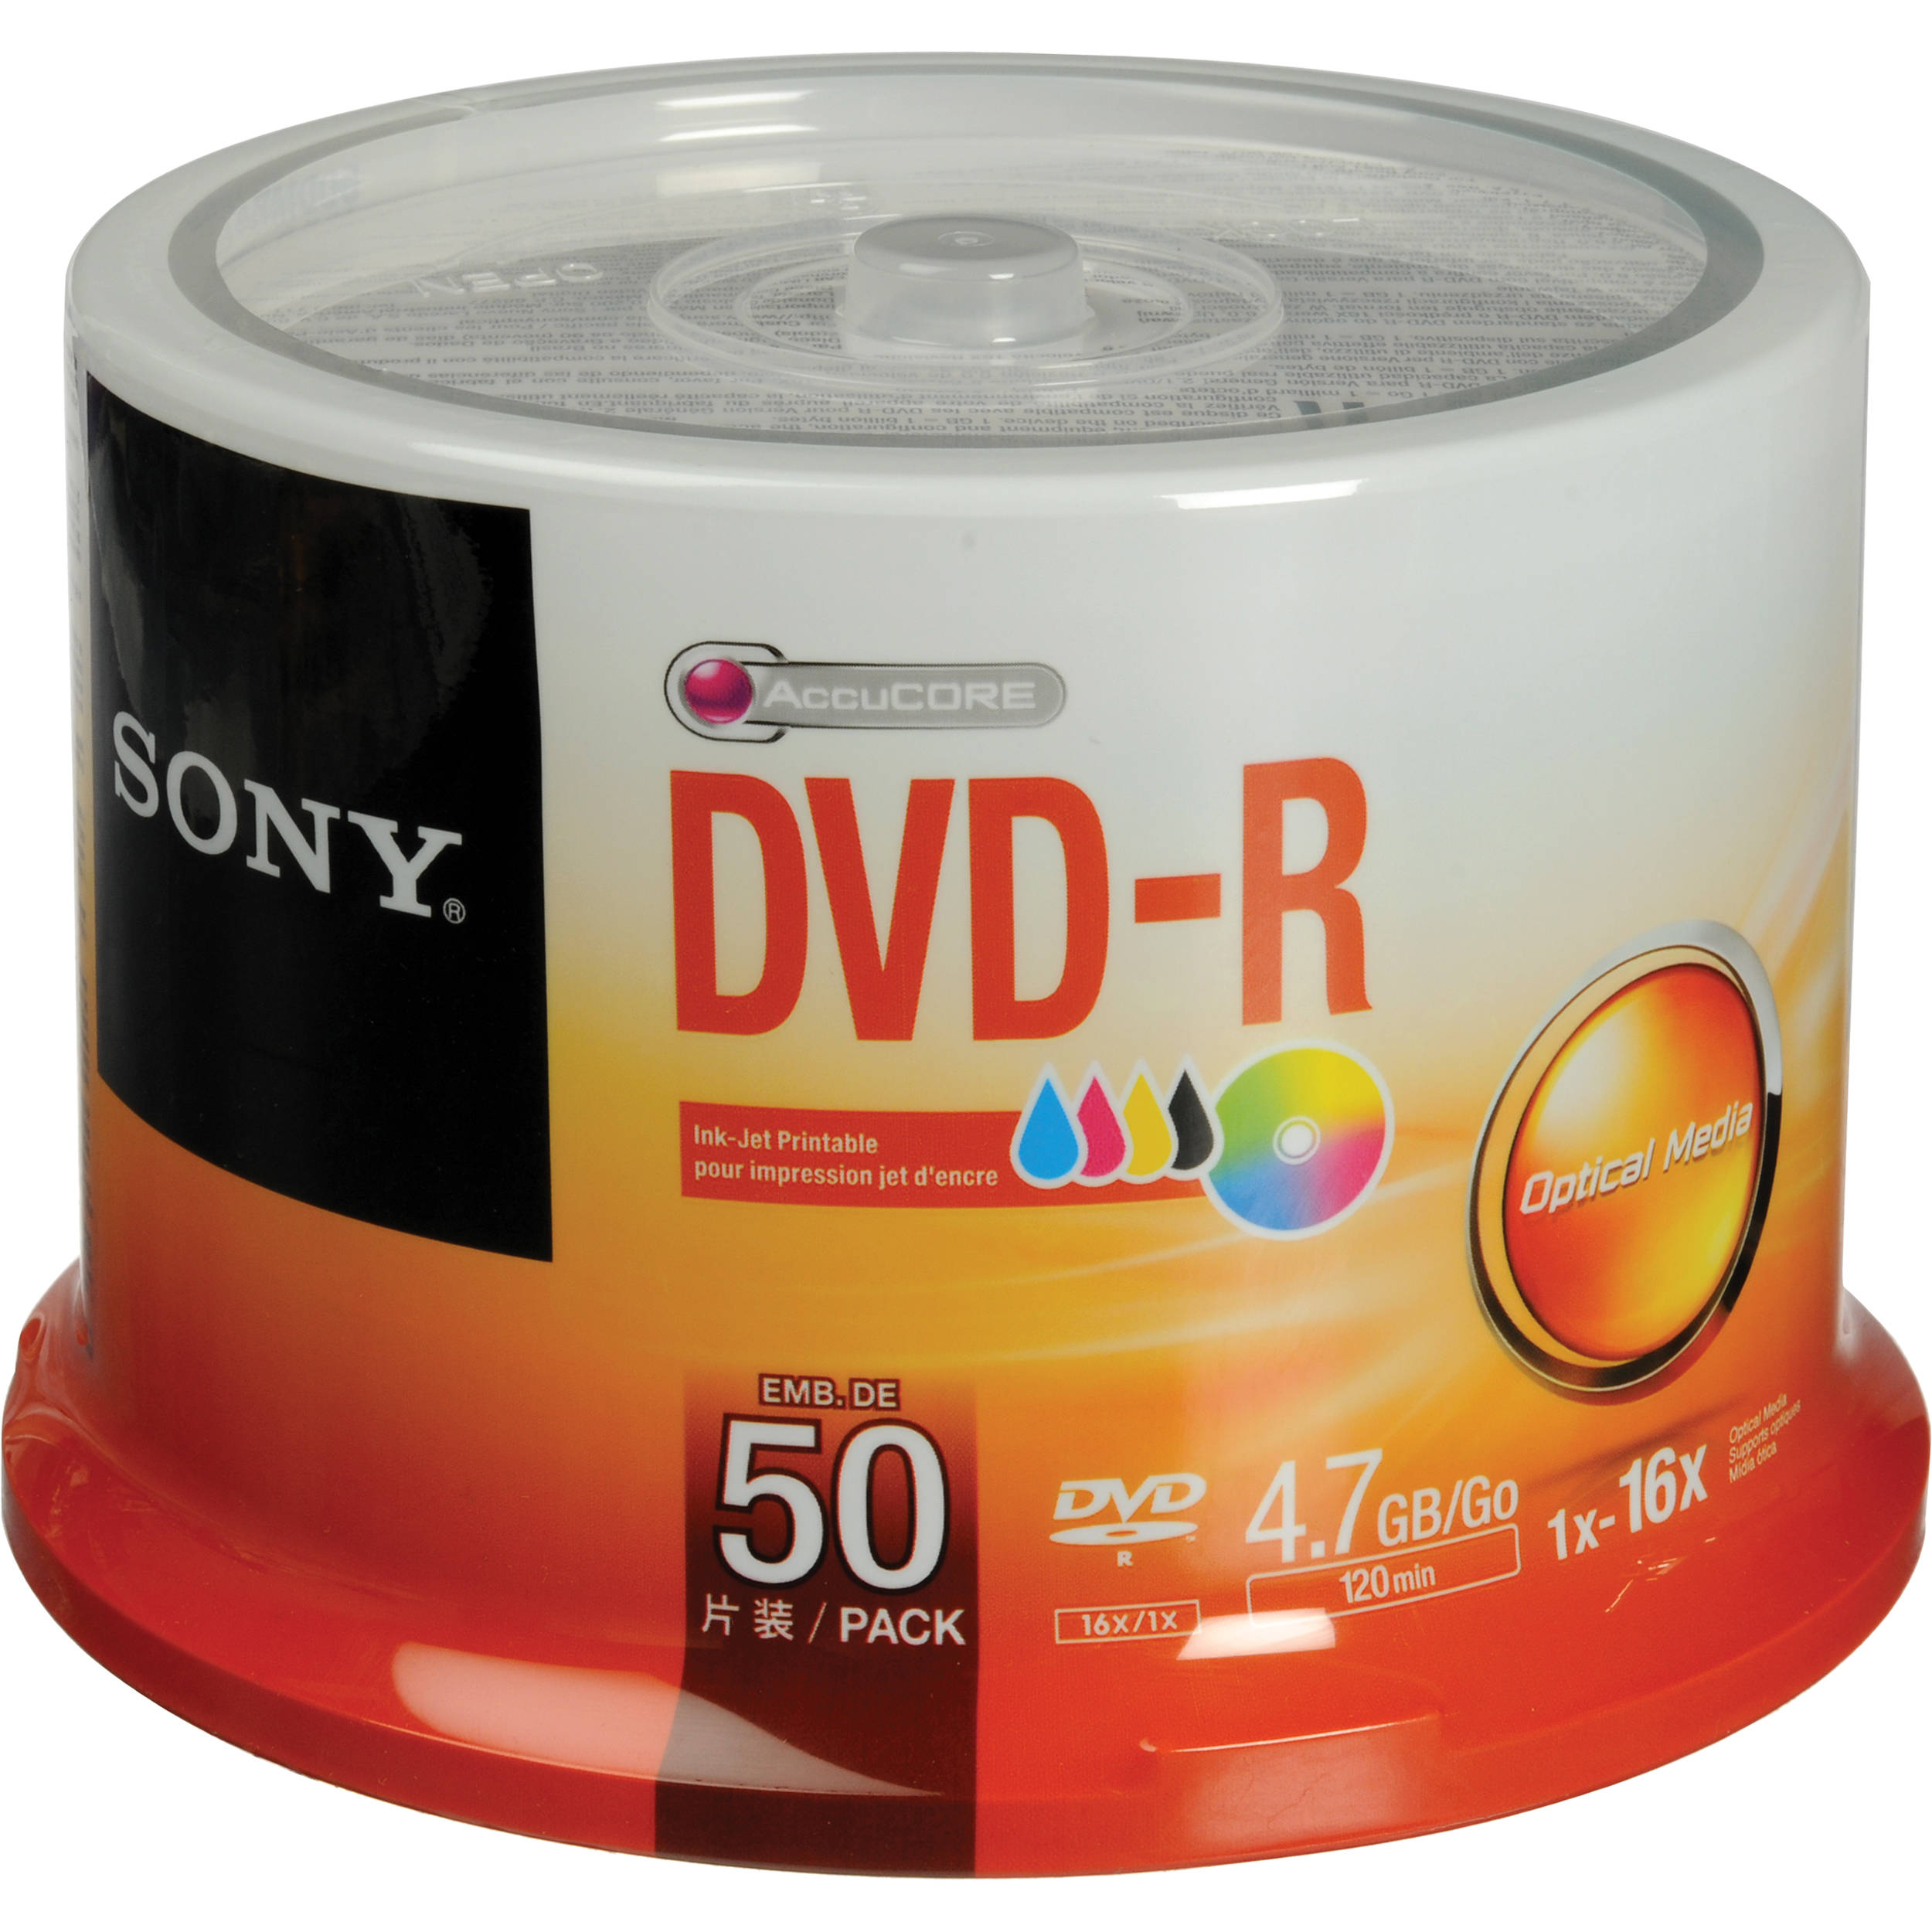 graphic about Blank Printable Cds known as Sony DVD-R 4.7 GB White Inkjet Printable Recordable Discs (Spindle Pack of 50)